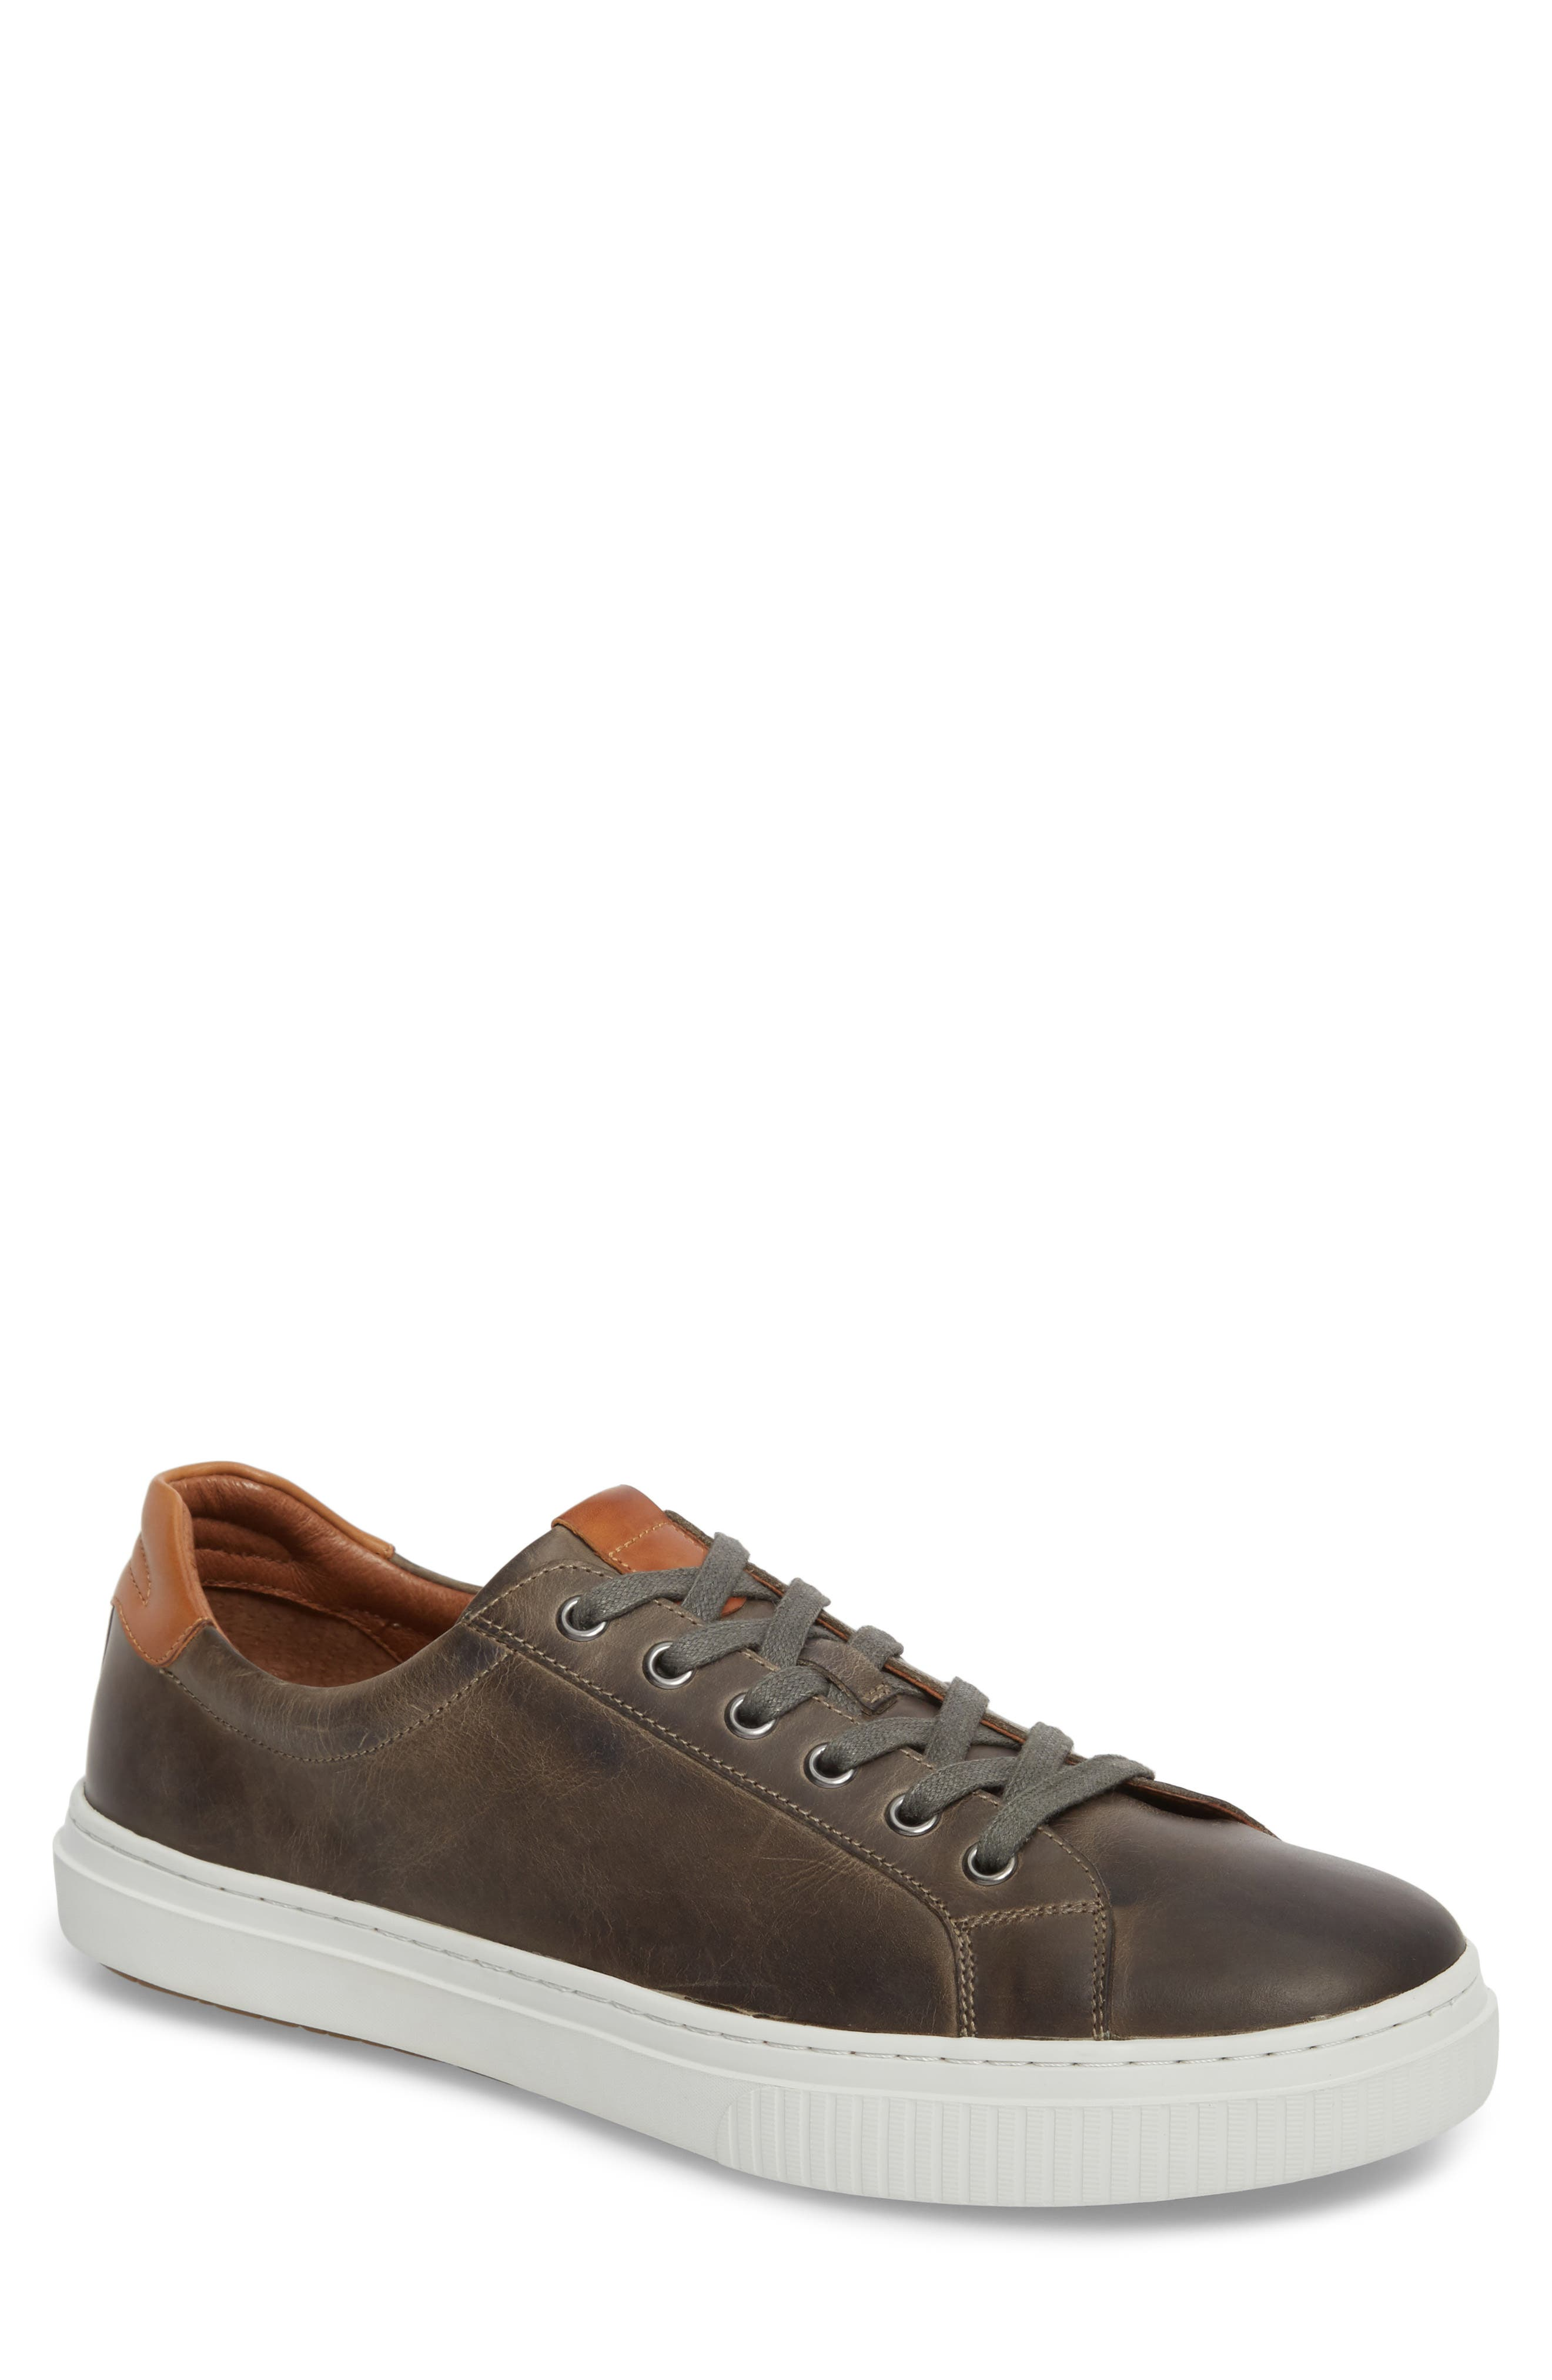 J & m 1850 Toliver Low Top Sneaker, Grey